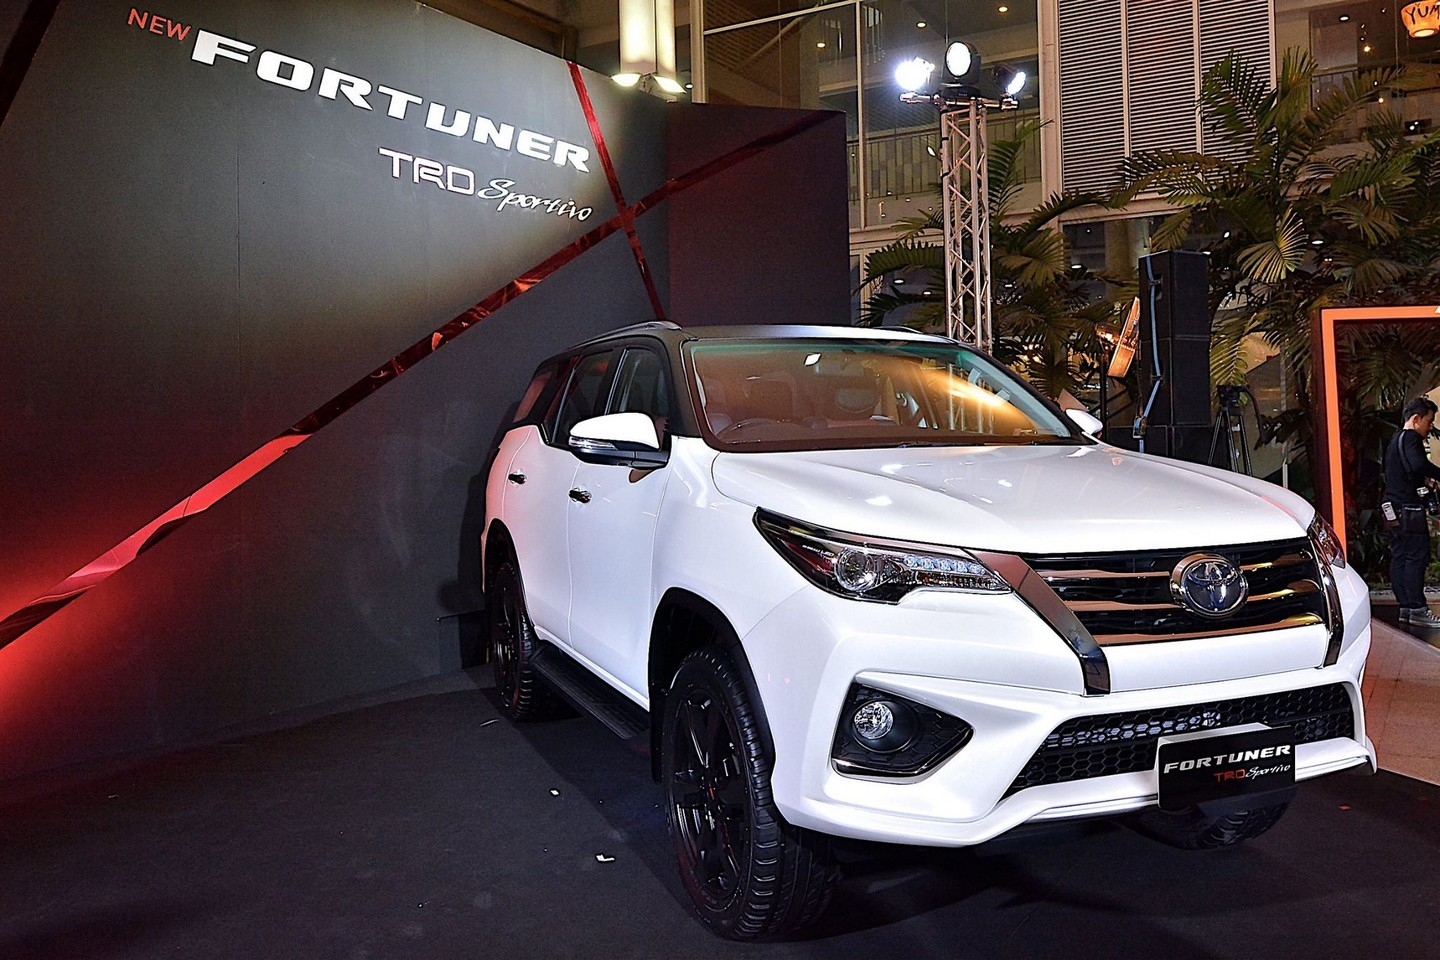 New Toyota Fortuner TRD Sportivo Is a Hilux SUV with ...